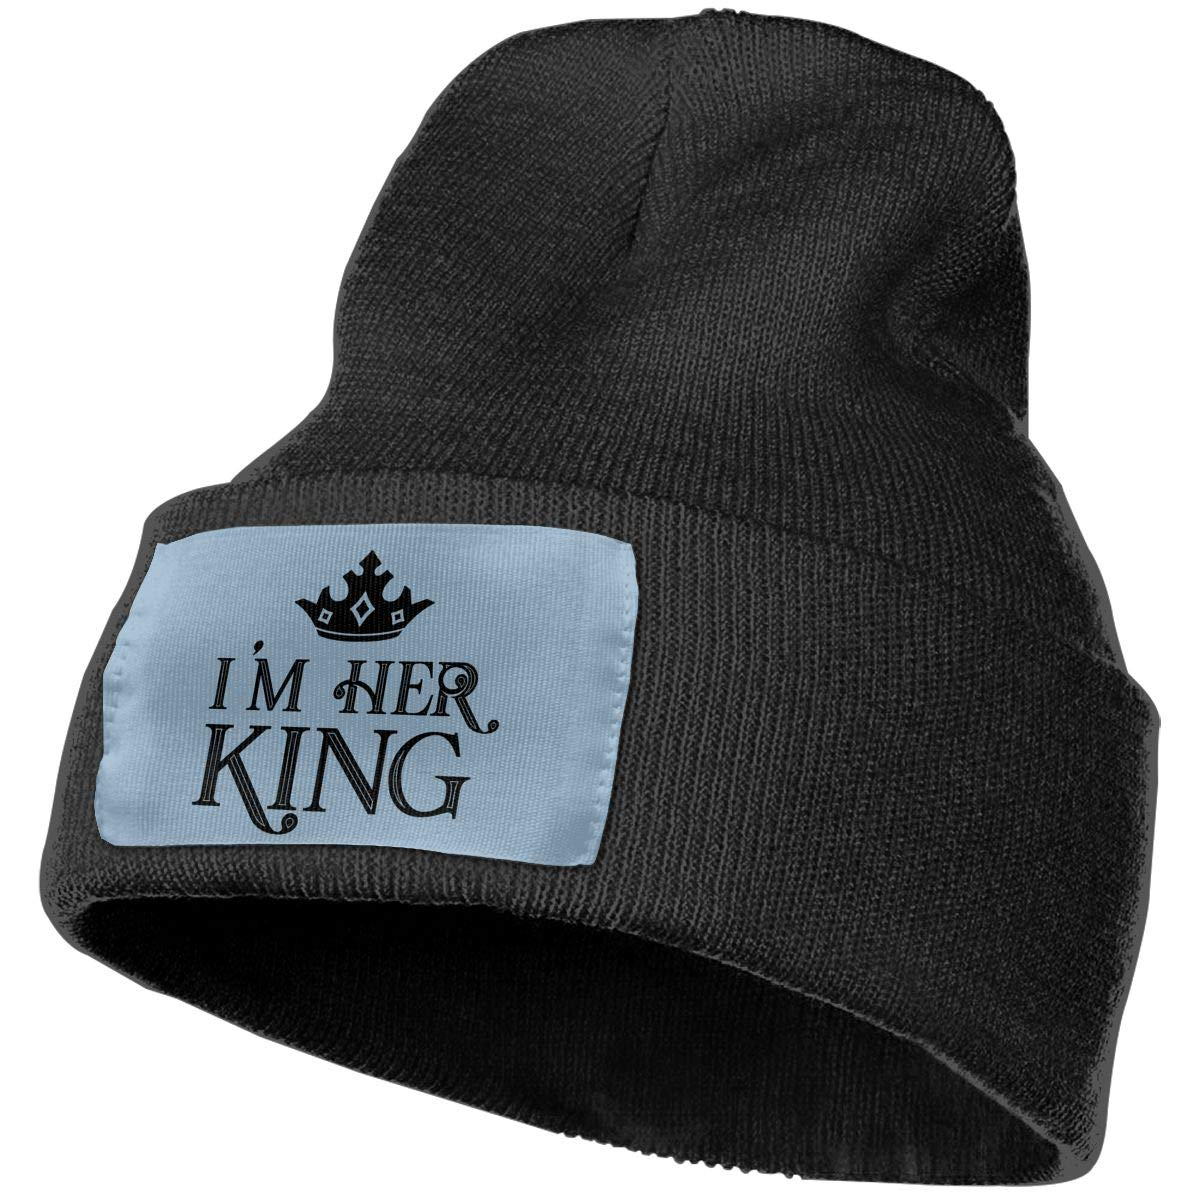 Beanie Im Her King Queen Funny Cute Husband Gift Knitted Hat Skull Cap Men Women